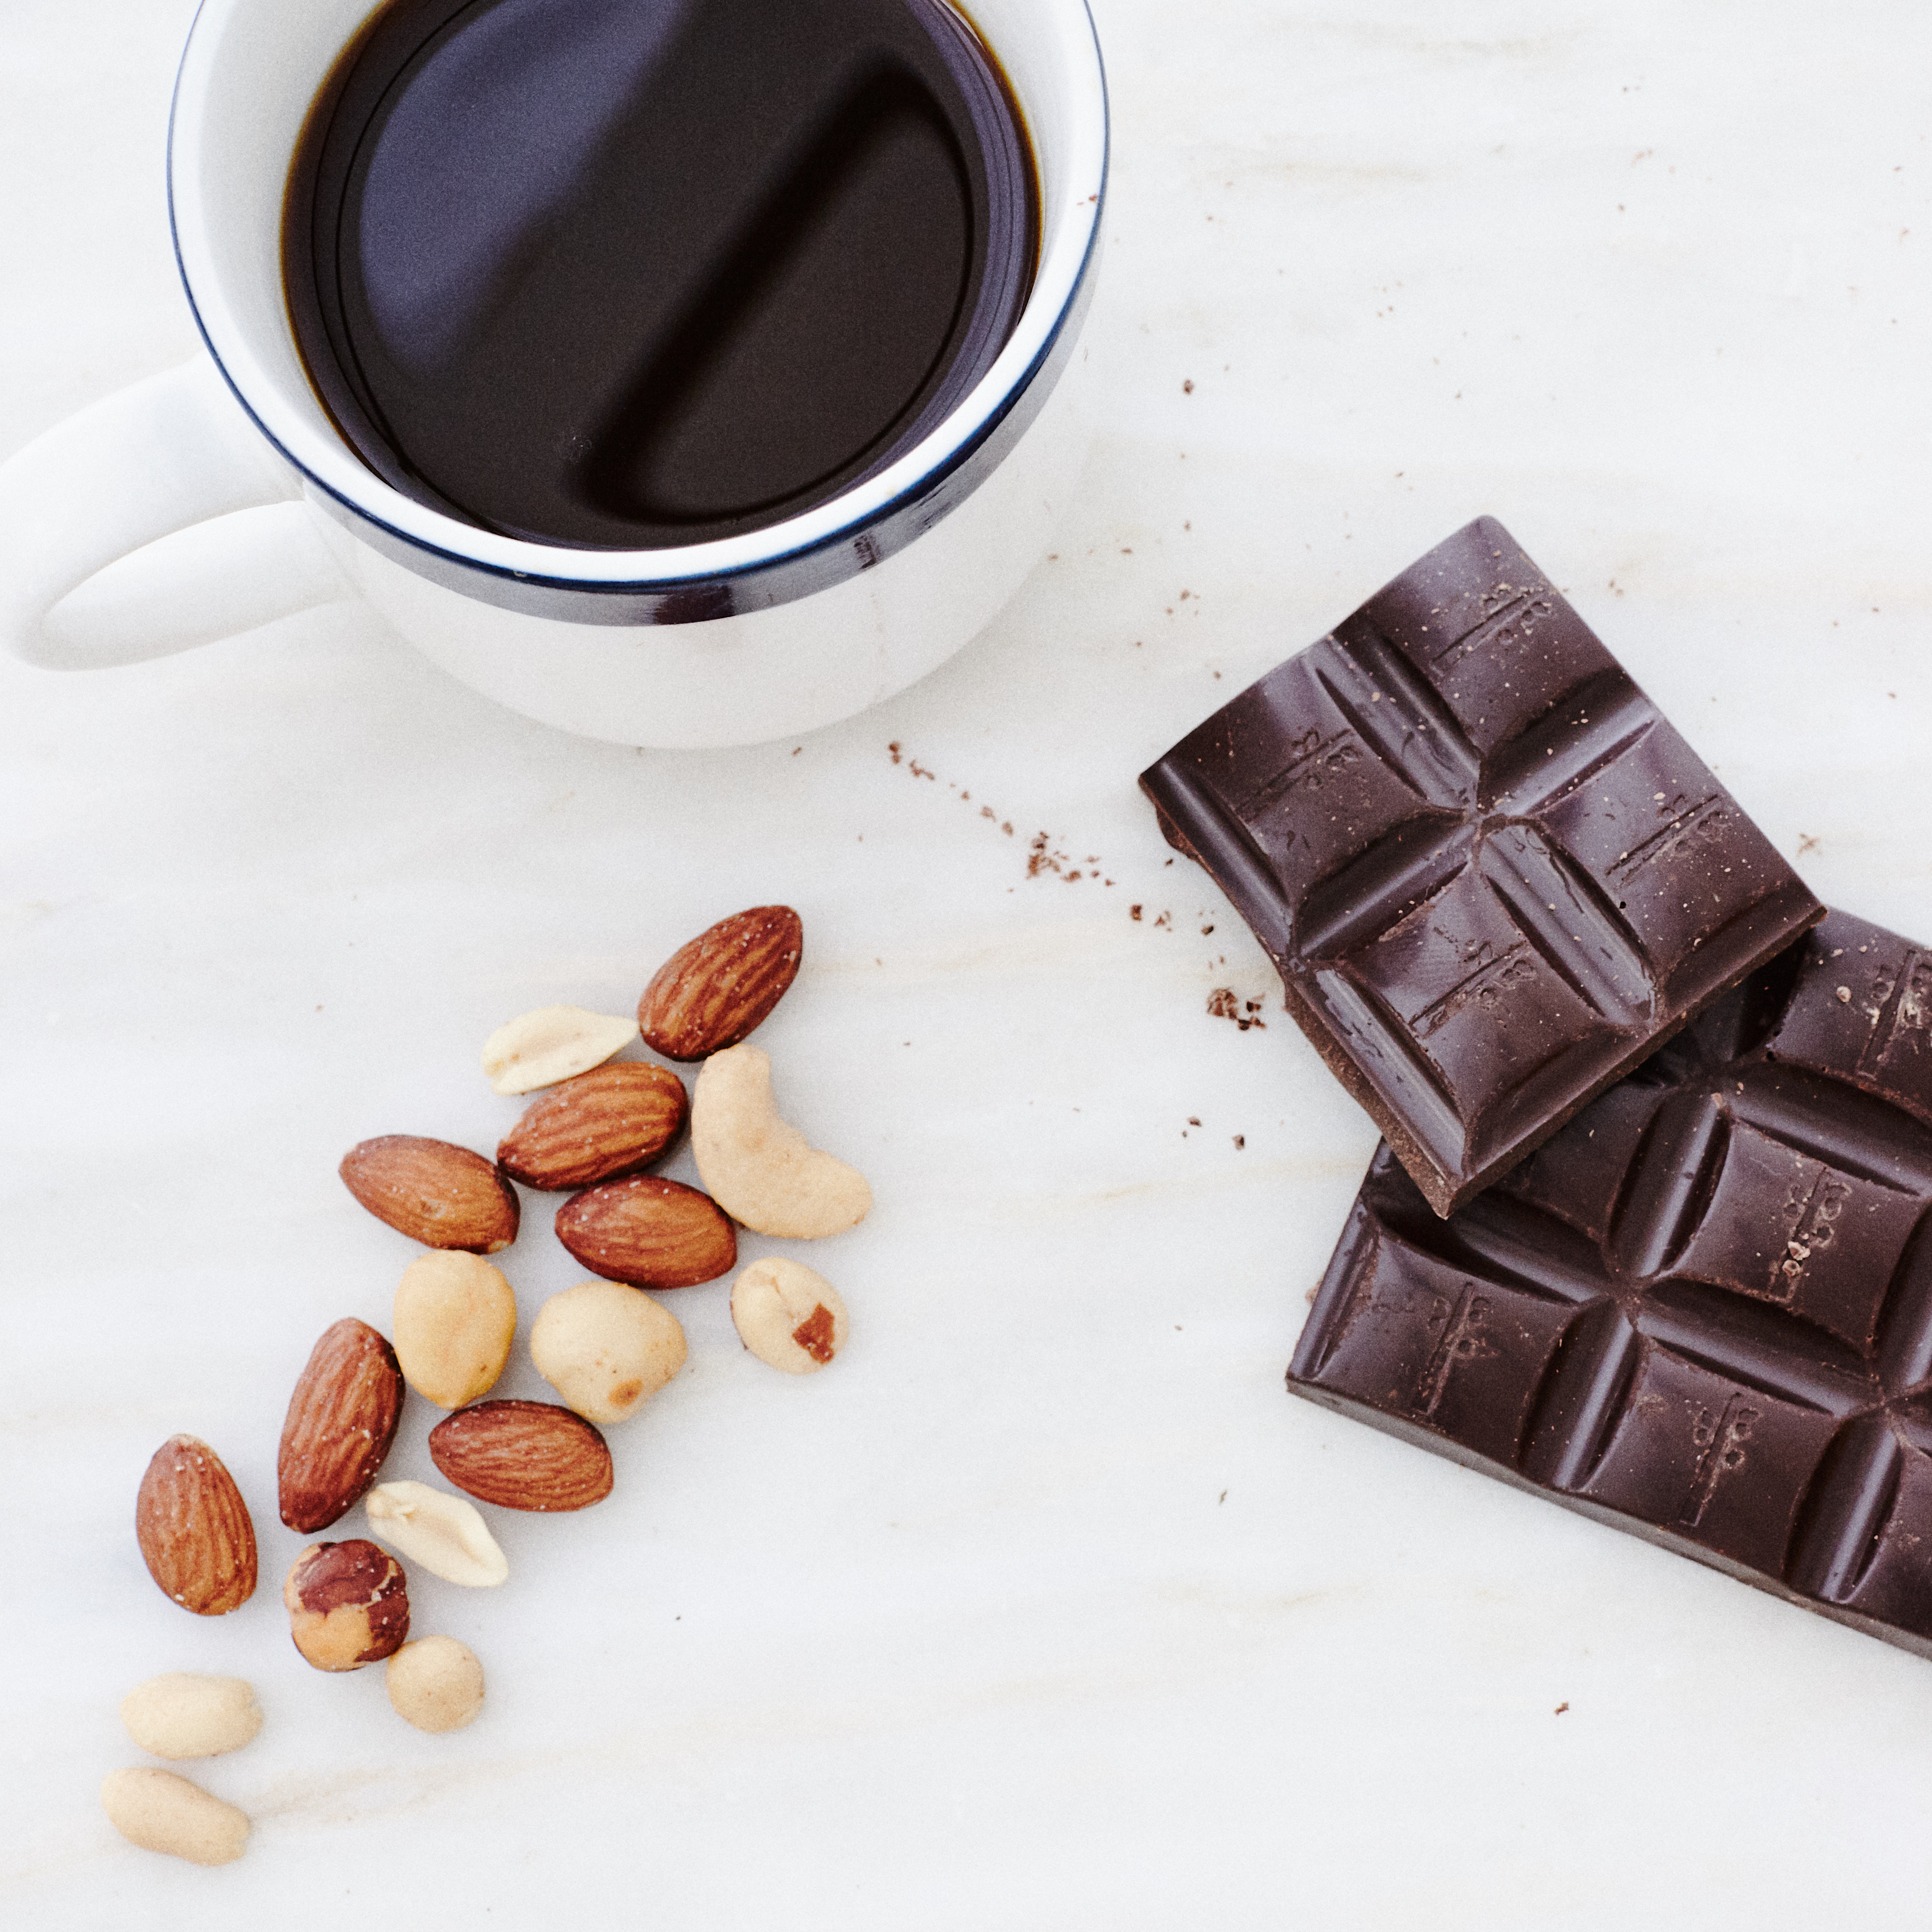 Cup of coffee with nuts and chocolate